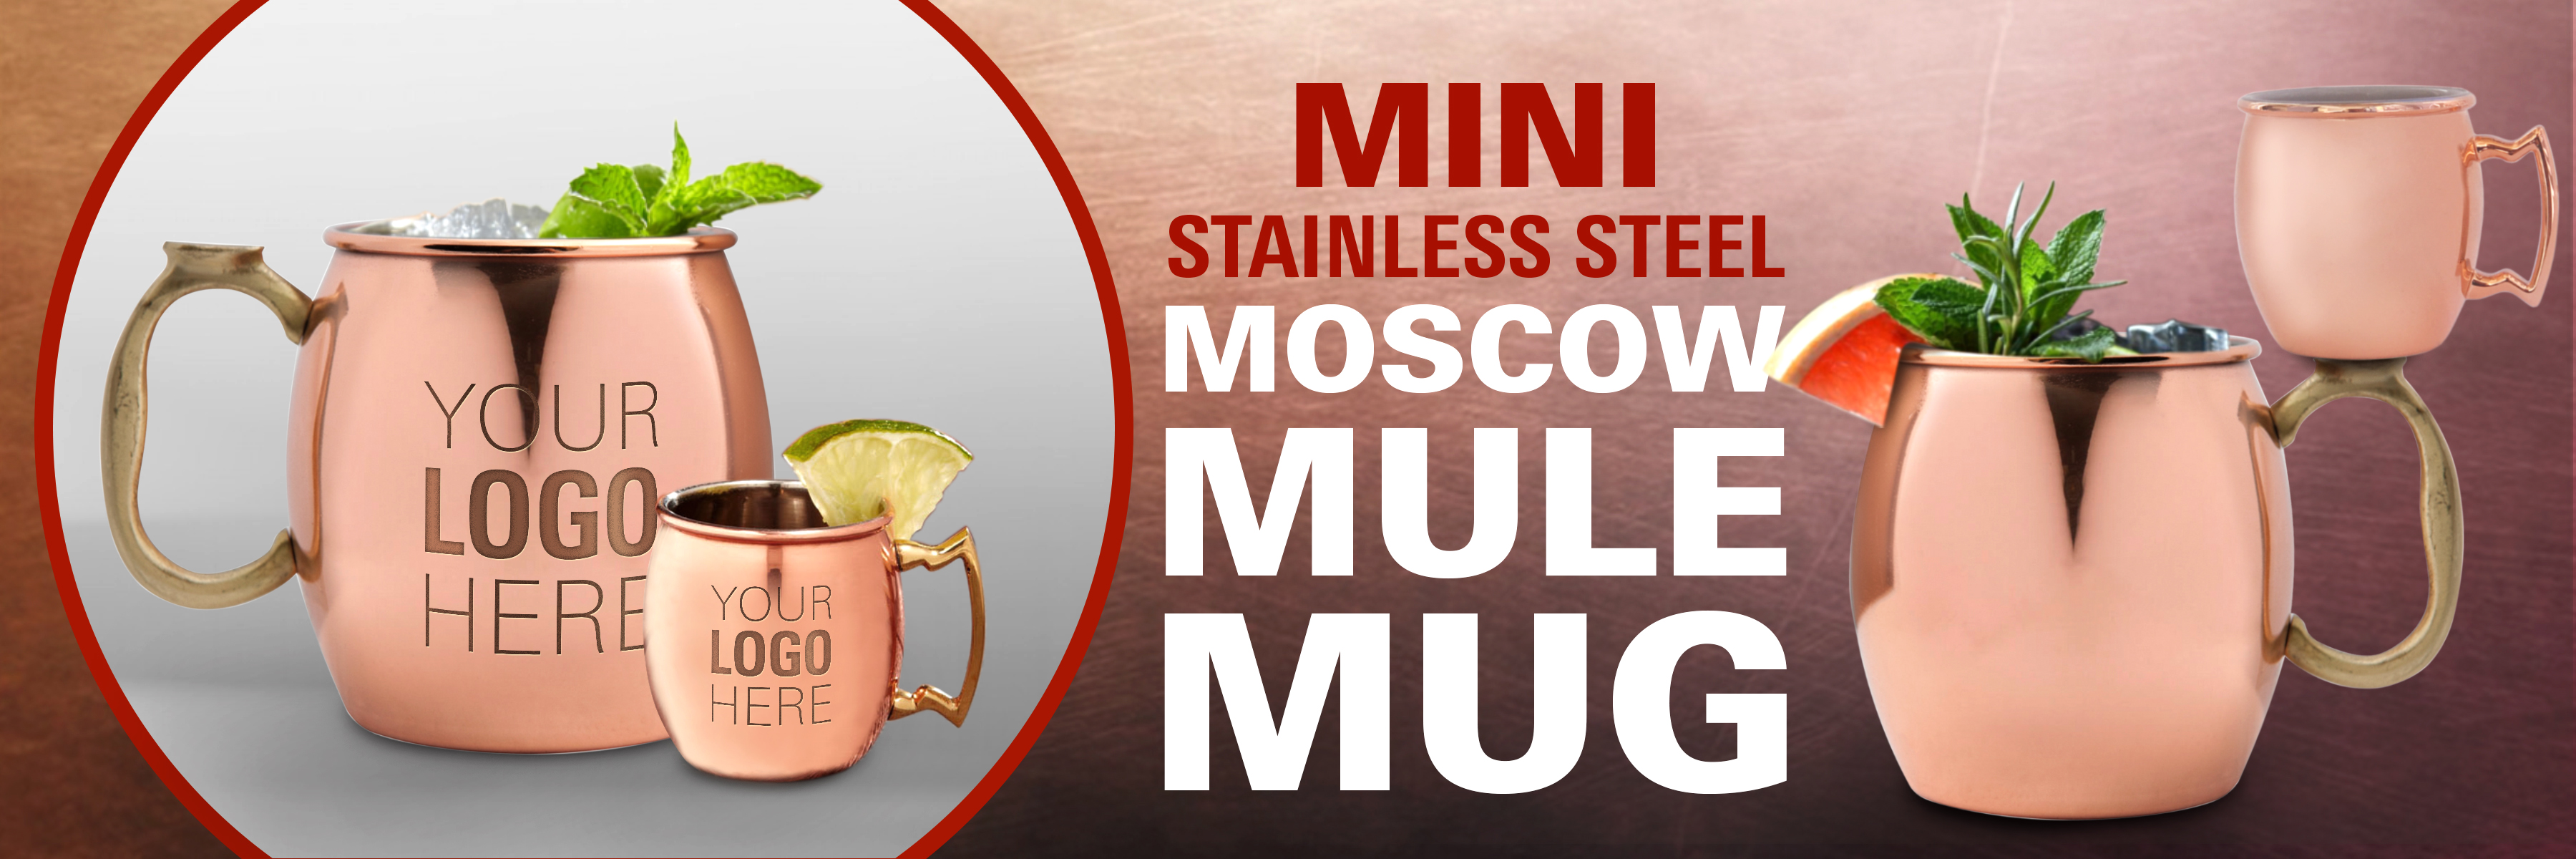 mini stainless steel moscow mule mug